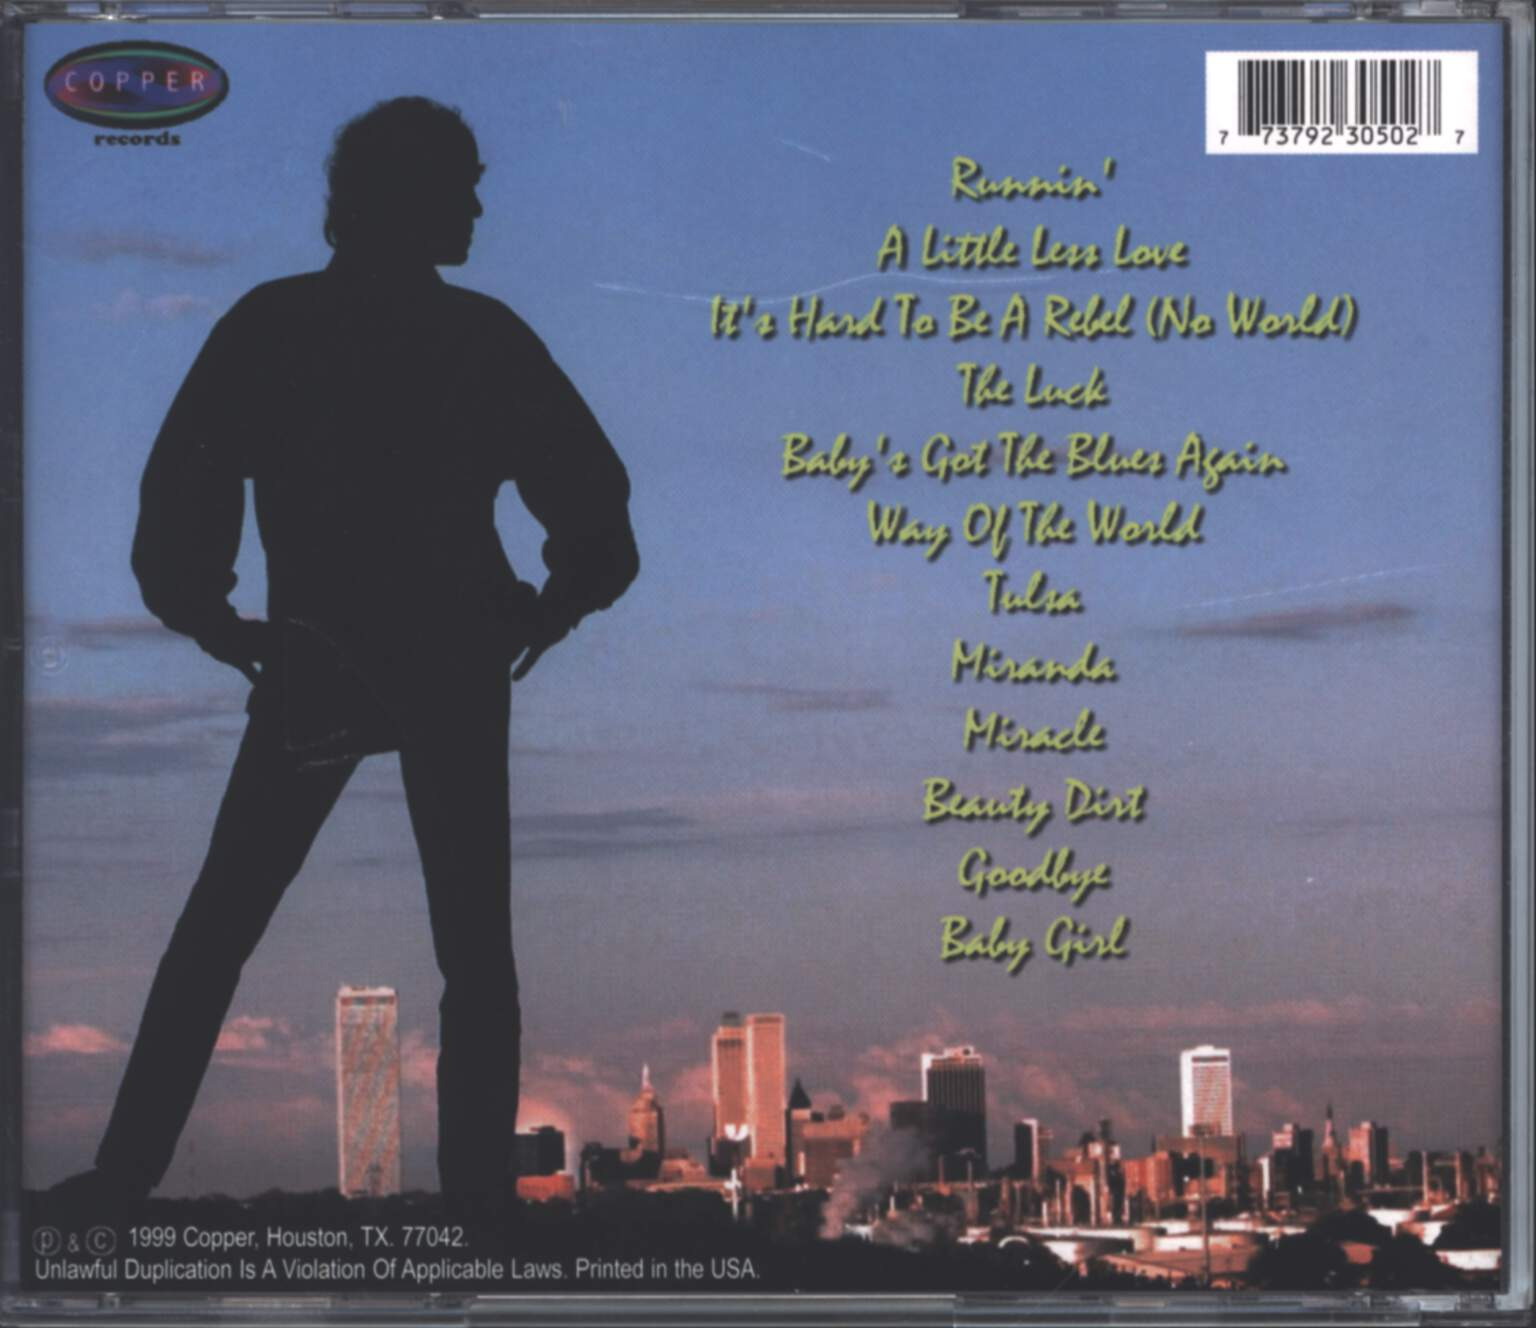 Dwight Twilley: Tulsa, CD